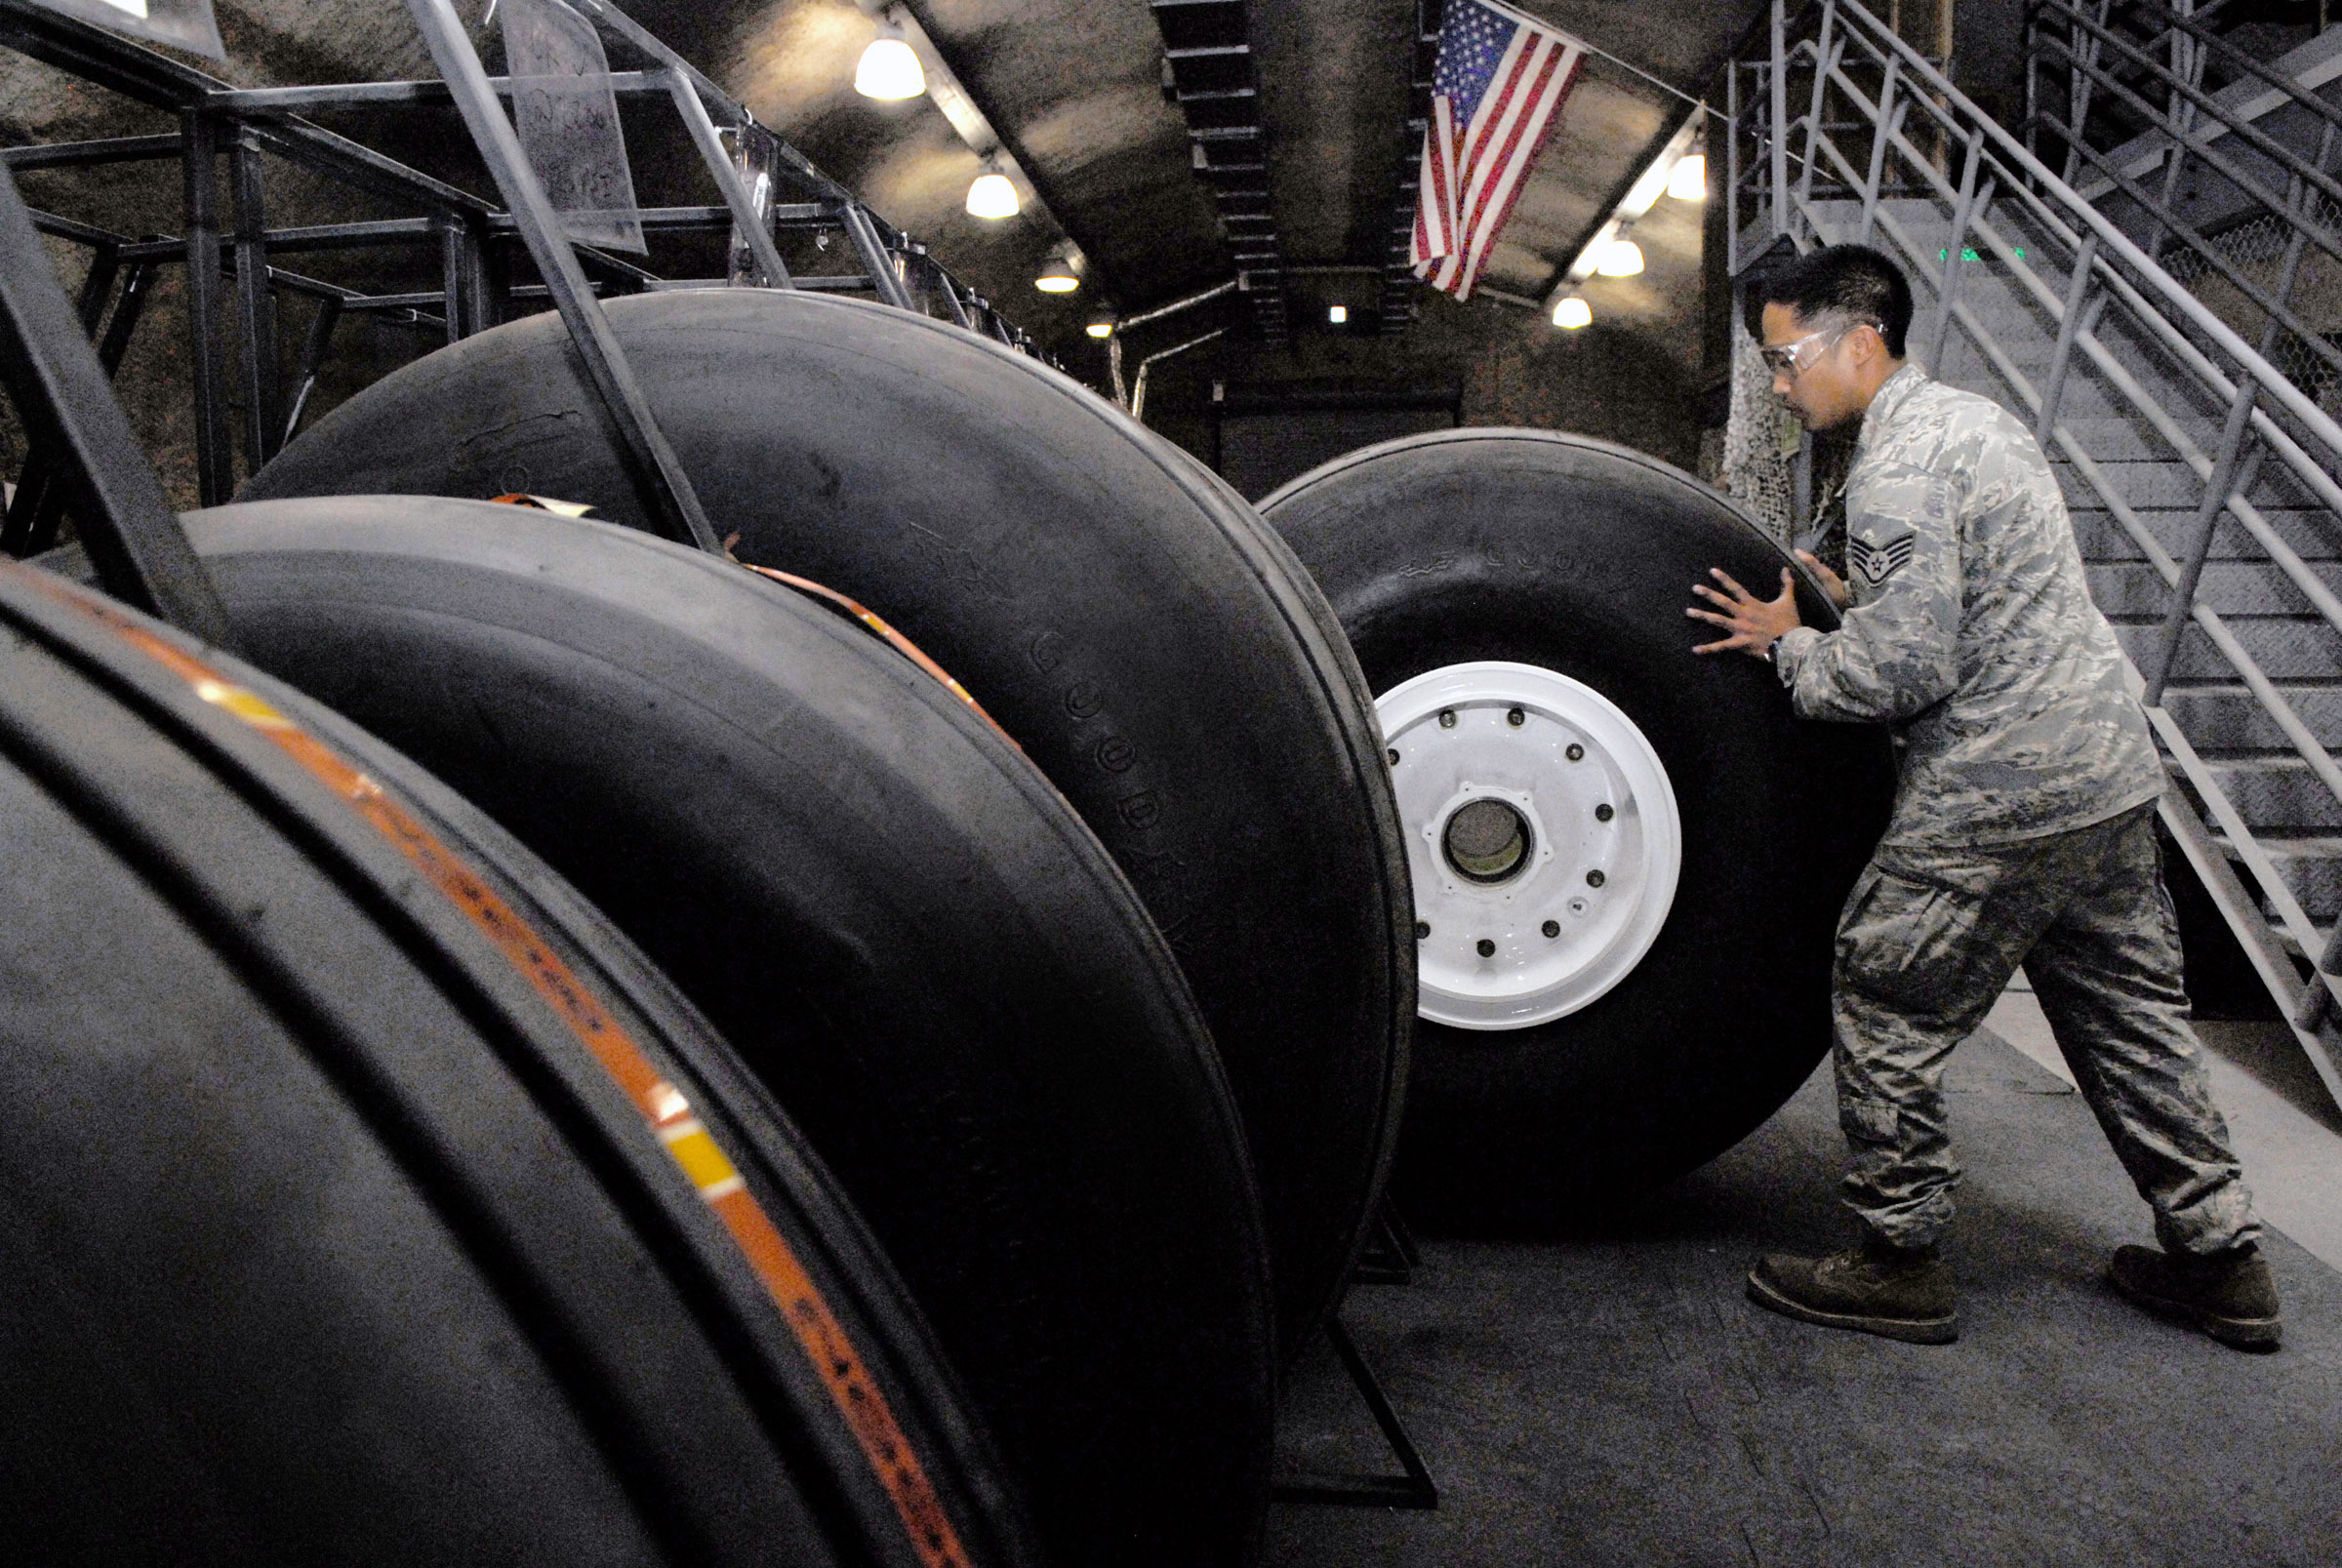 Inspection of aircraft tyres